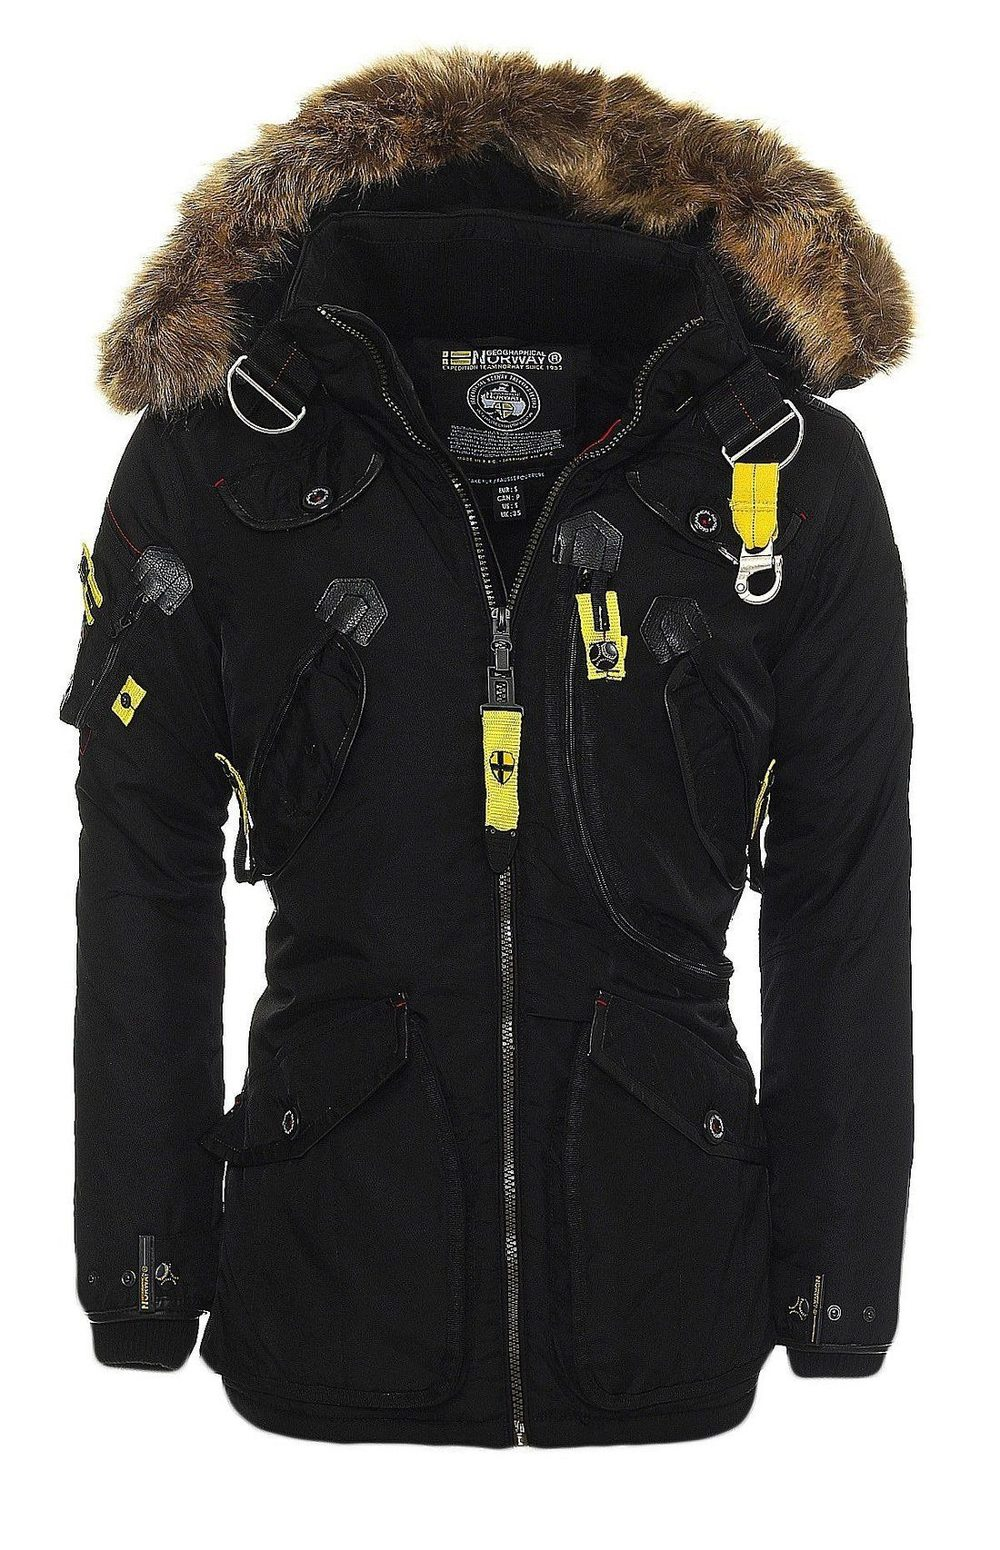 geographical norway parka winterjacke arcos warme jacke outdoor ebay. Black Bedroom Furniture Sets. Home Design Ideas